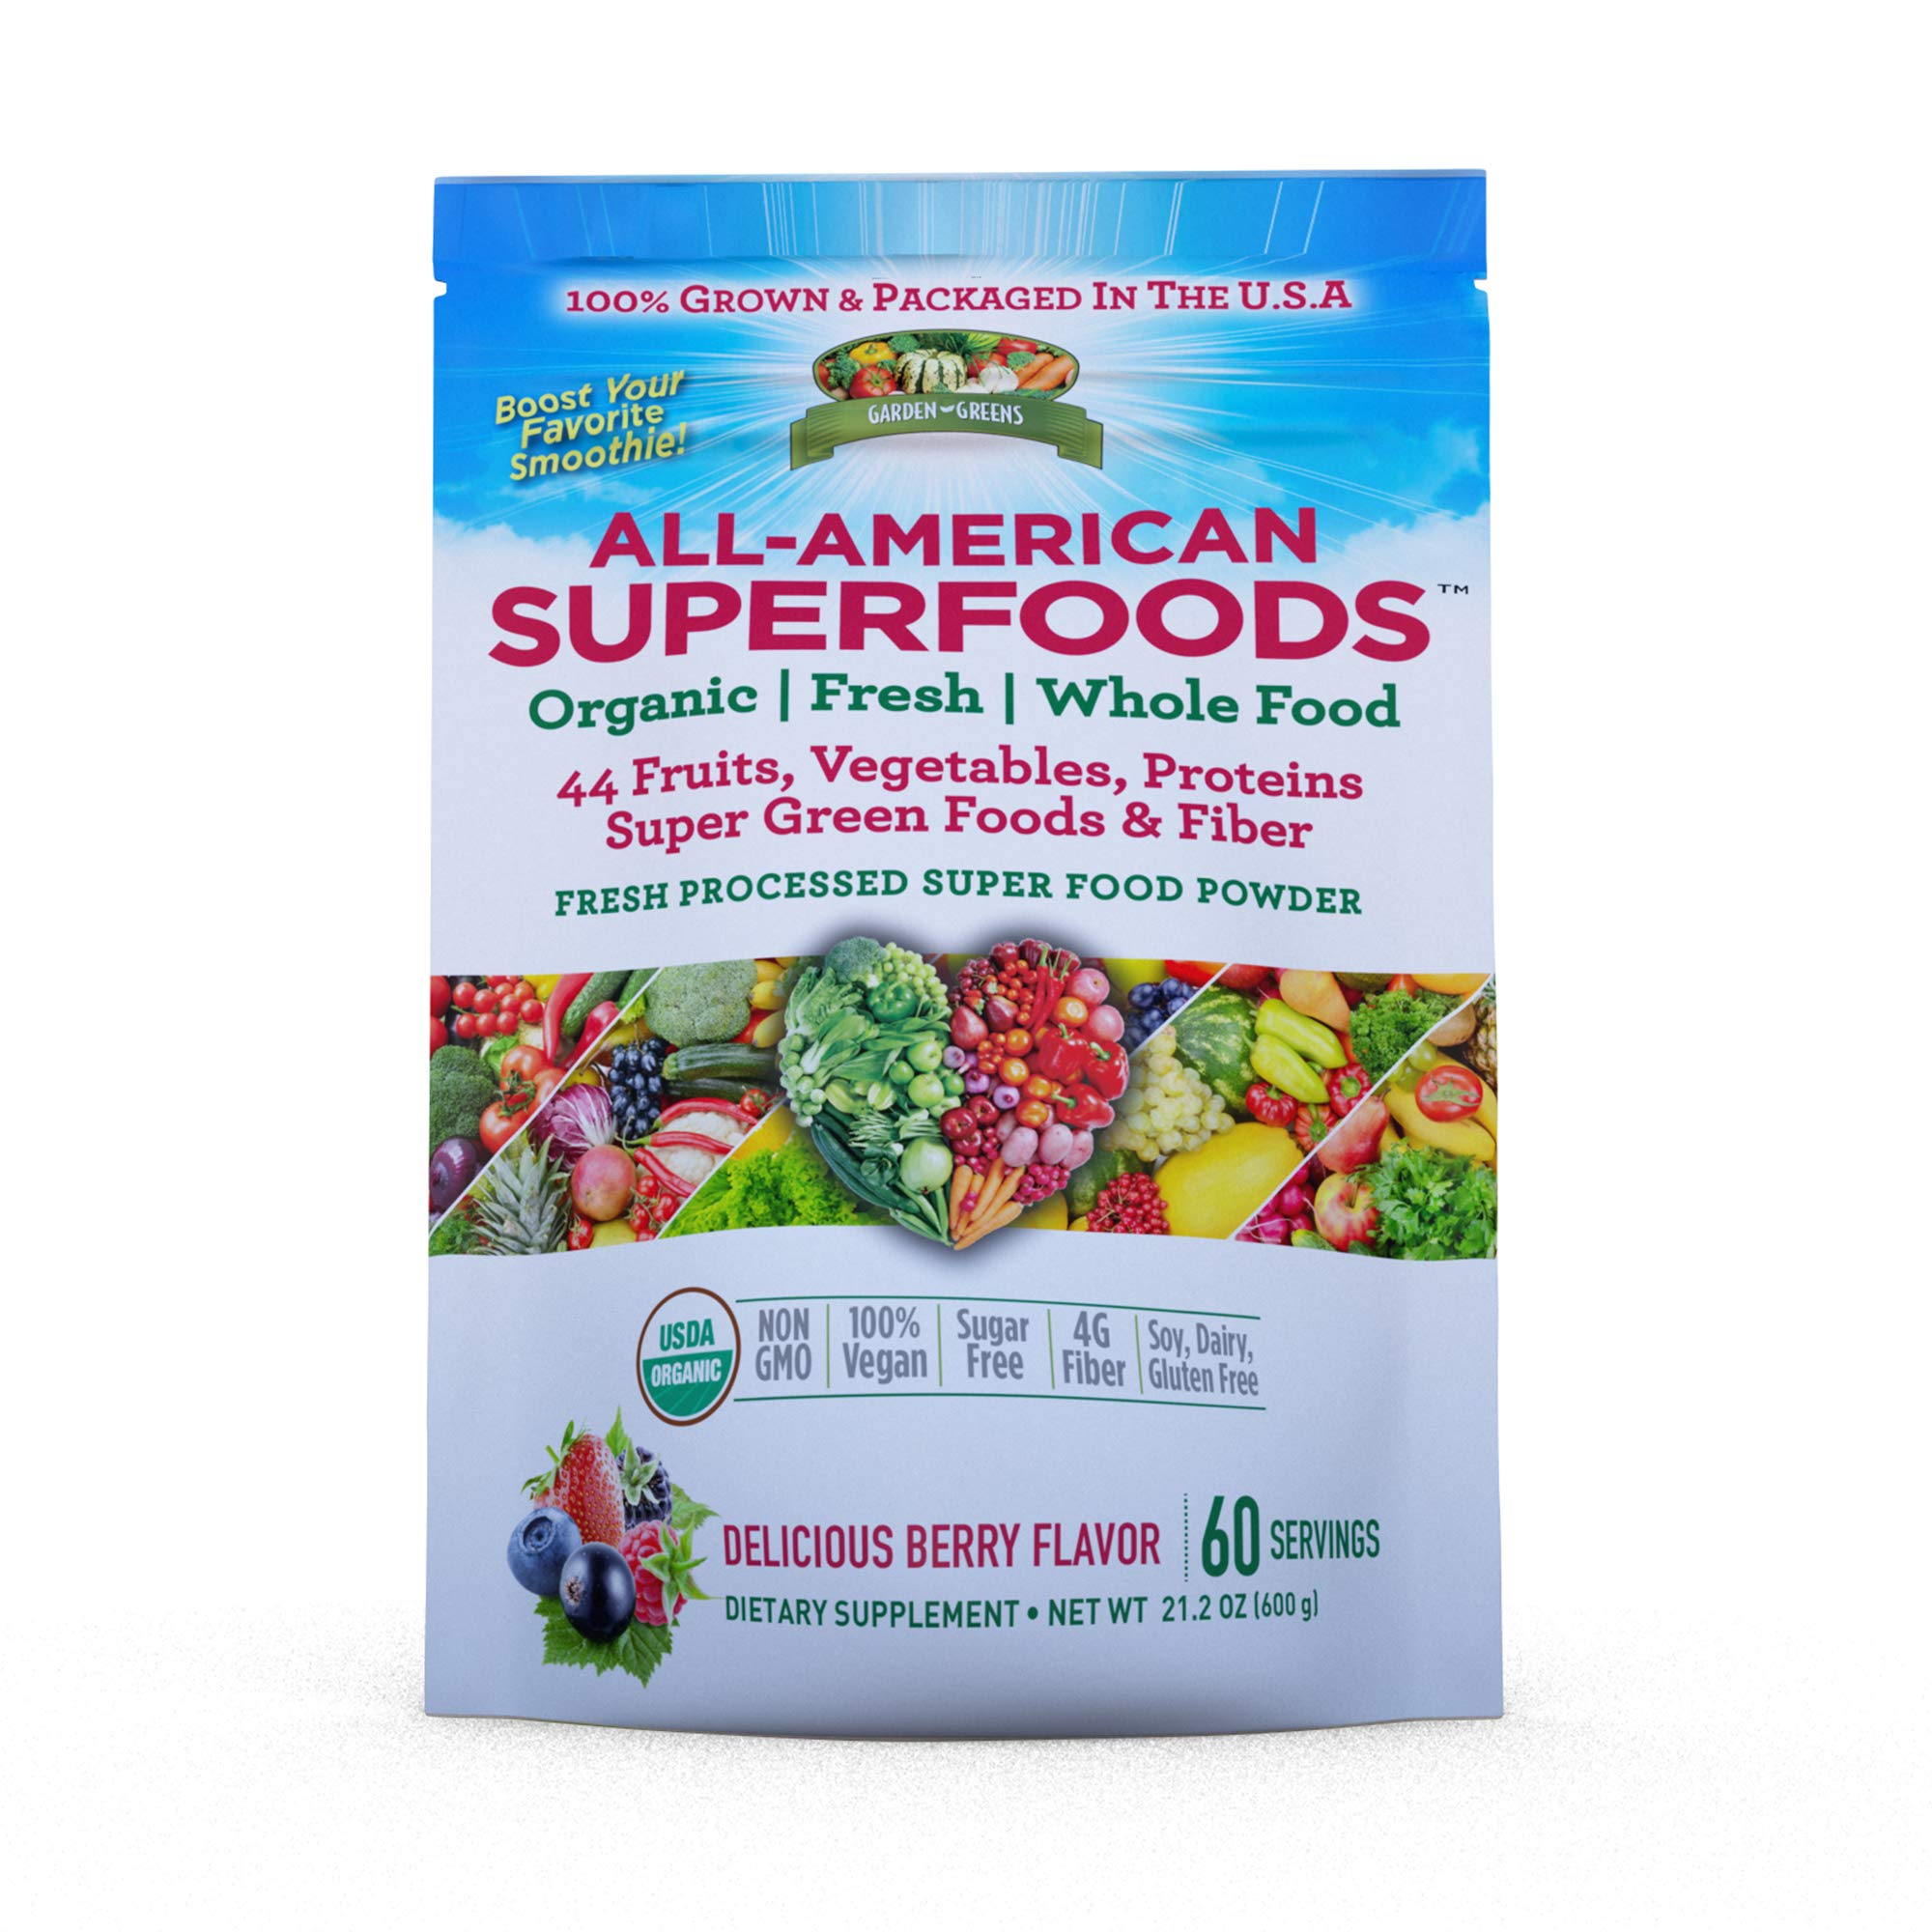 Garden Greens All-American Superfoods 44-Plant Supplement Powder, Protein, Fiber, Berry Flavor, 60 Servings Packaging May Vary